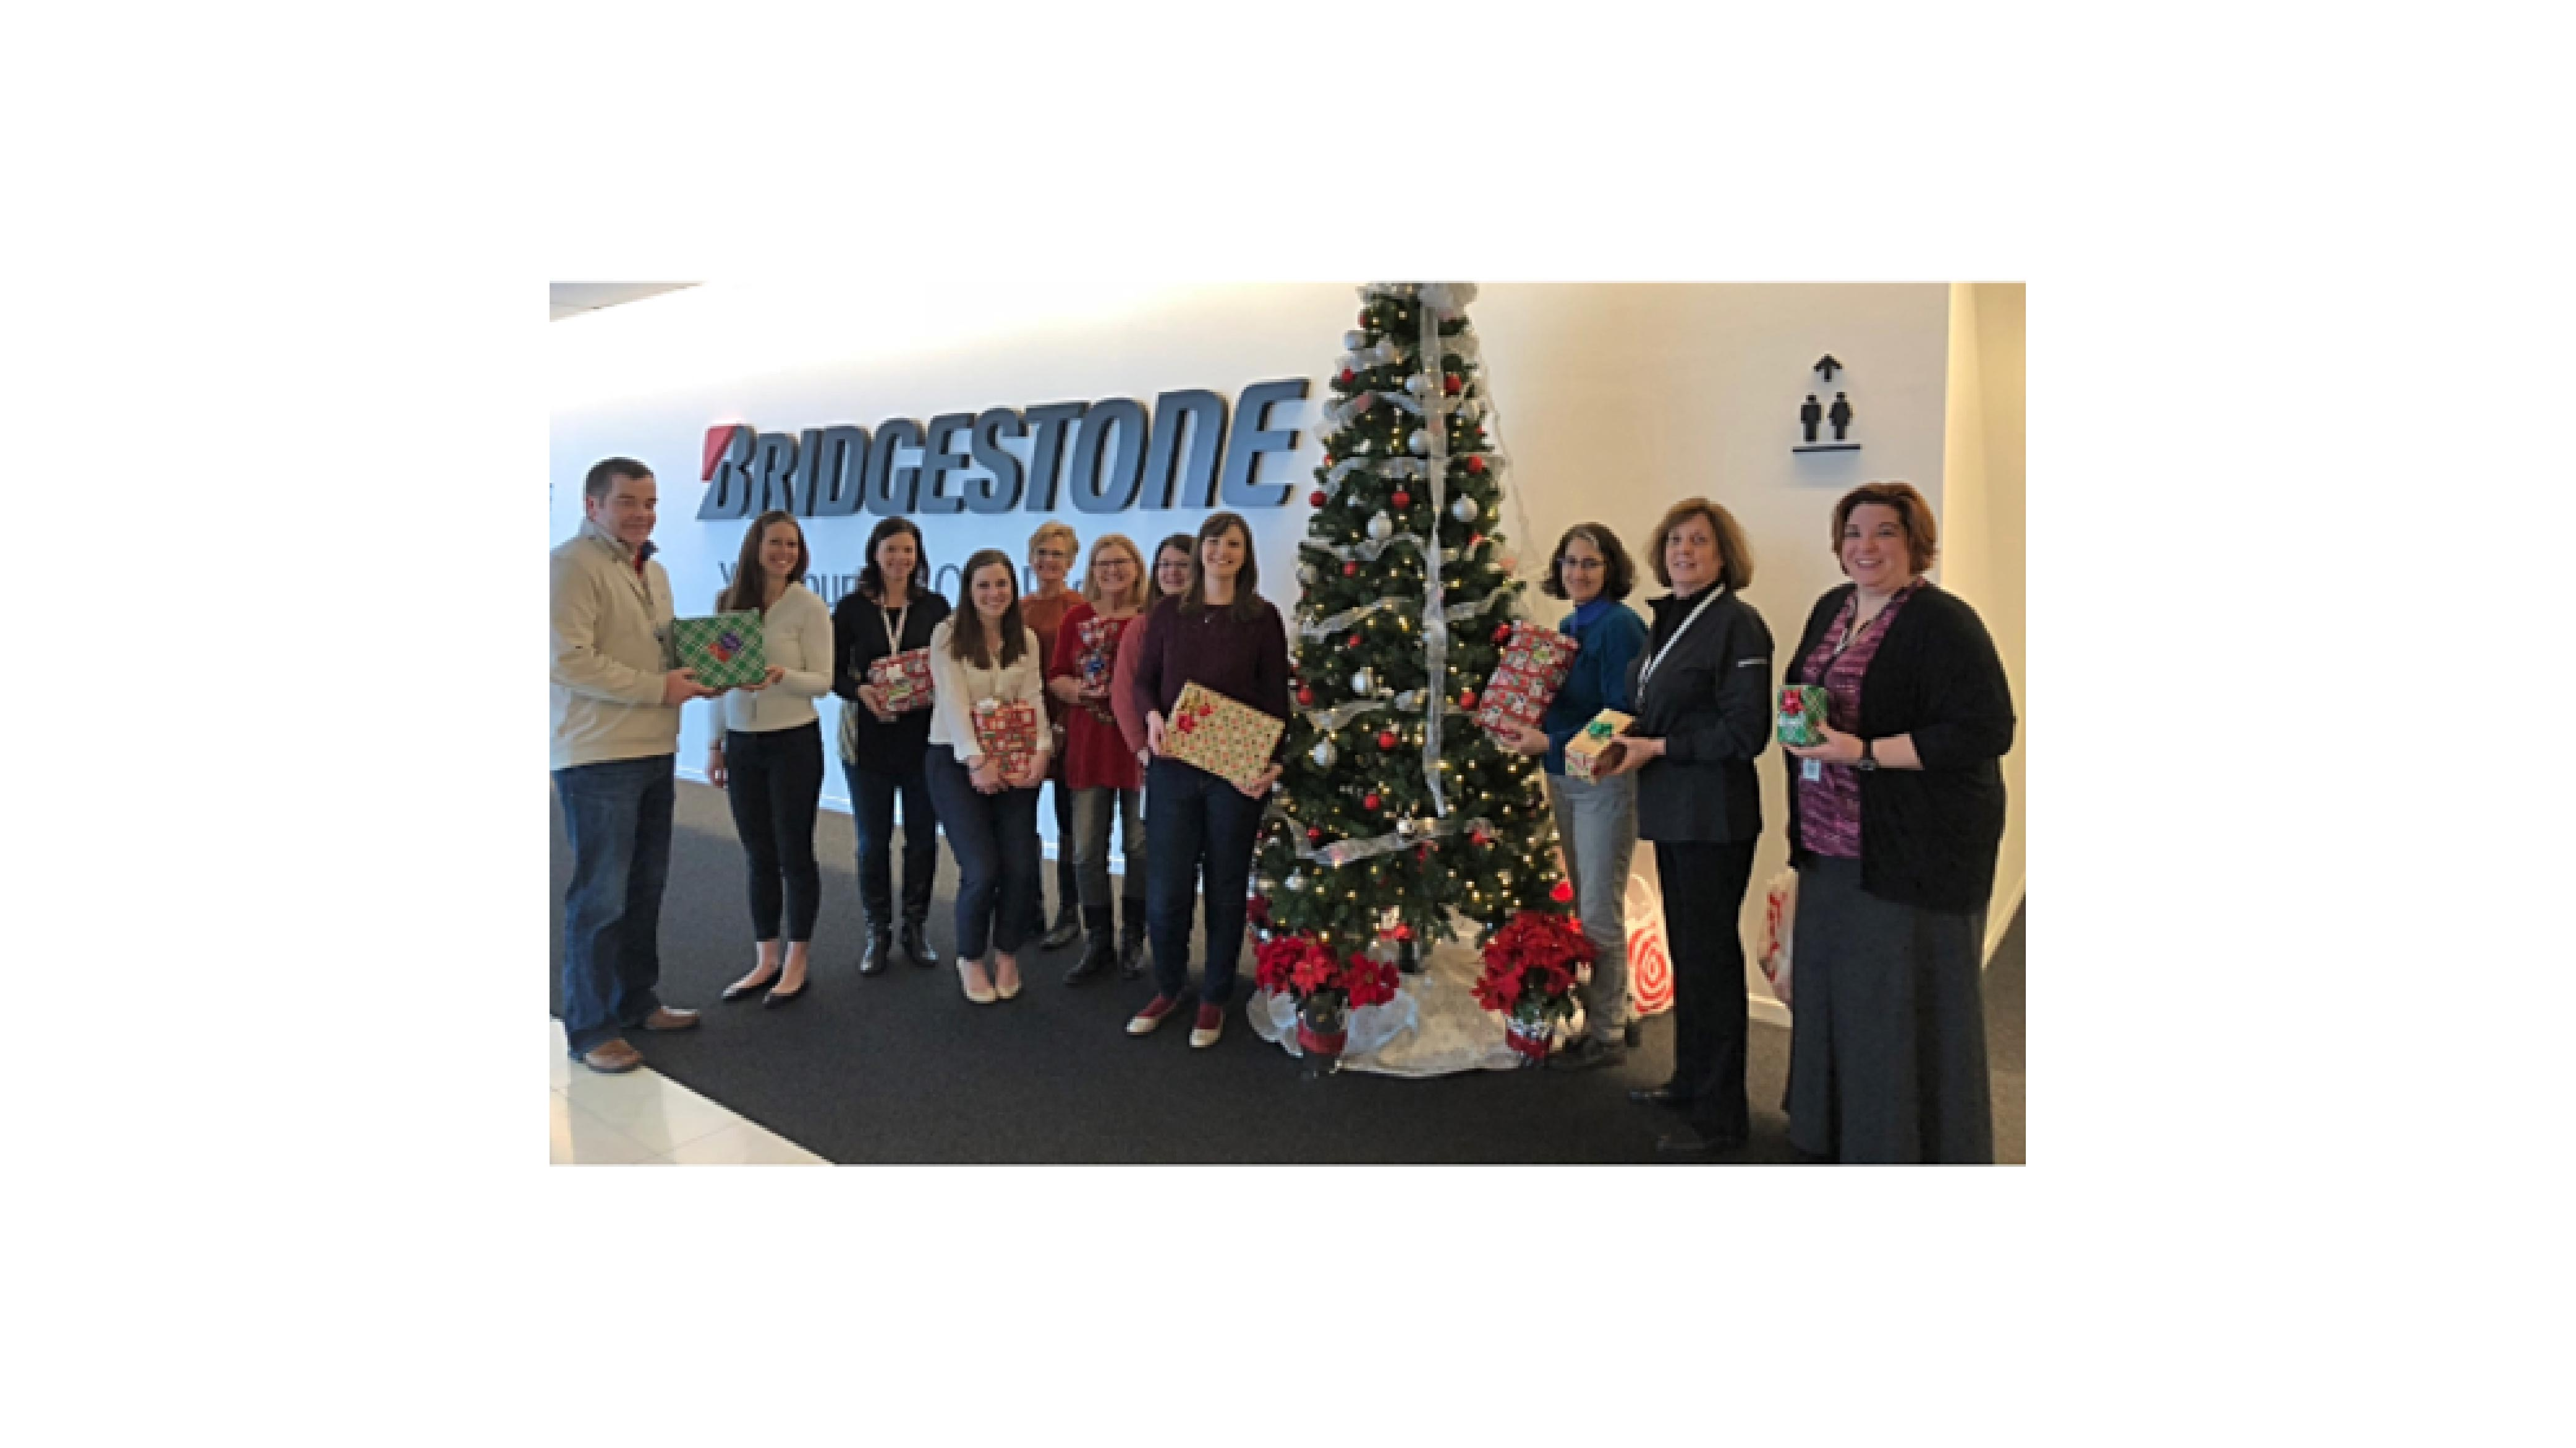 Bridgestone Veterans' group Holidays